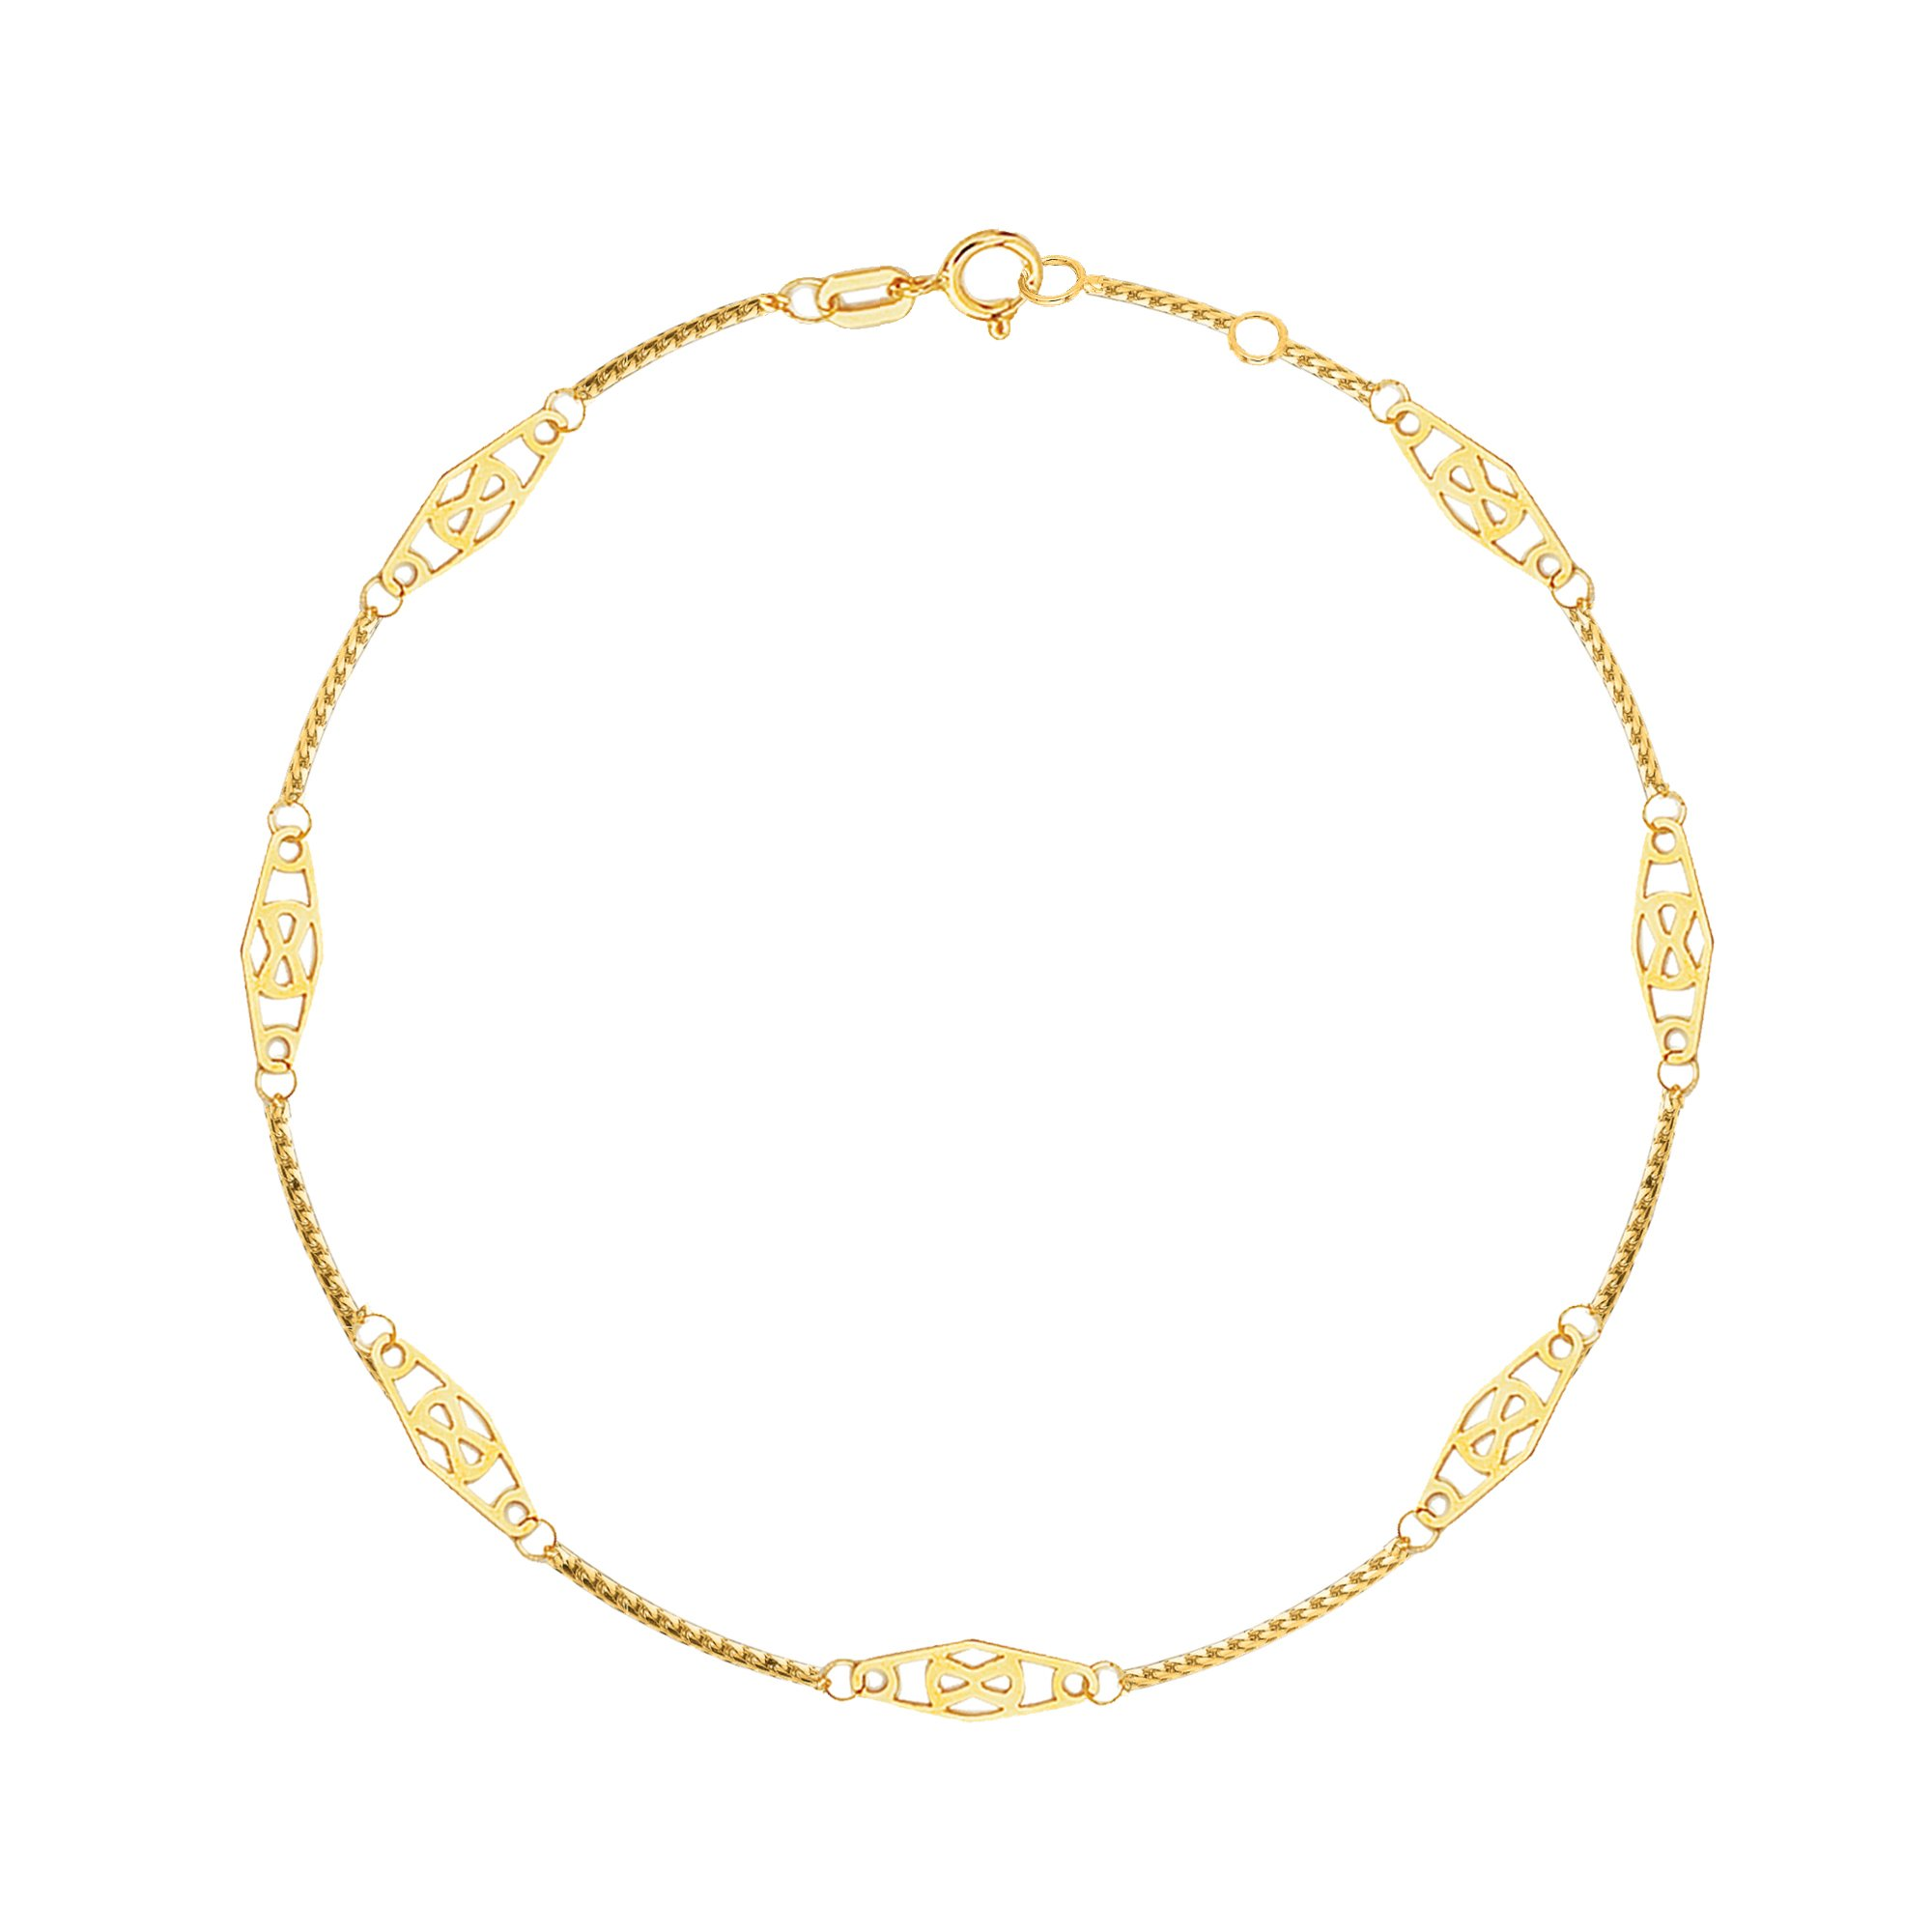 14K Solid Yellow Gold Infinity Anklet 10 Inches by Ritastephens